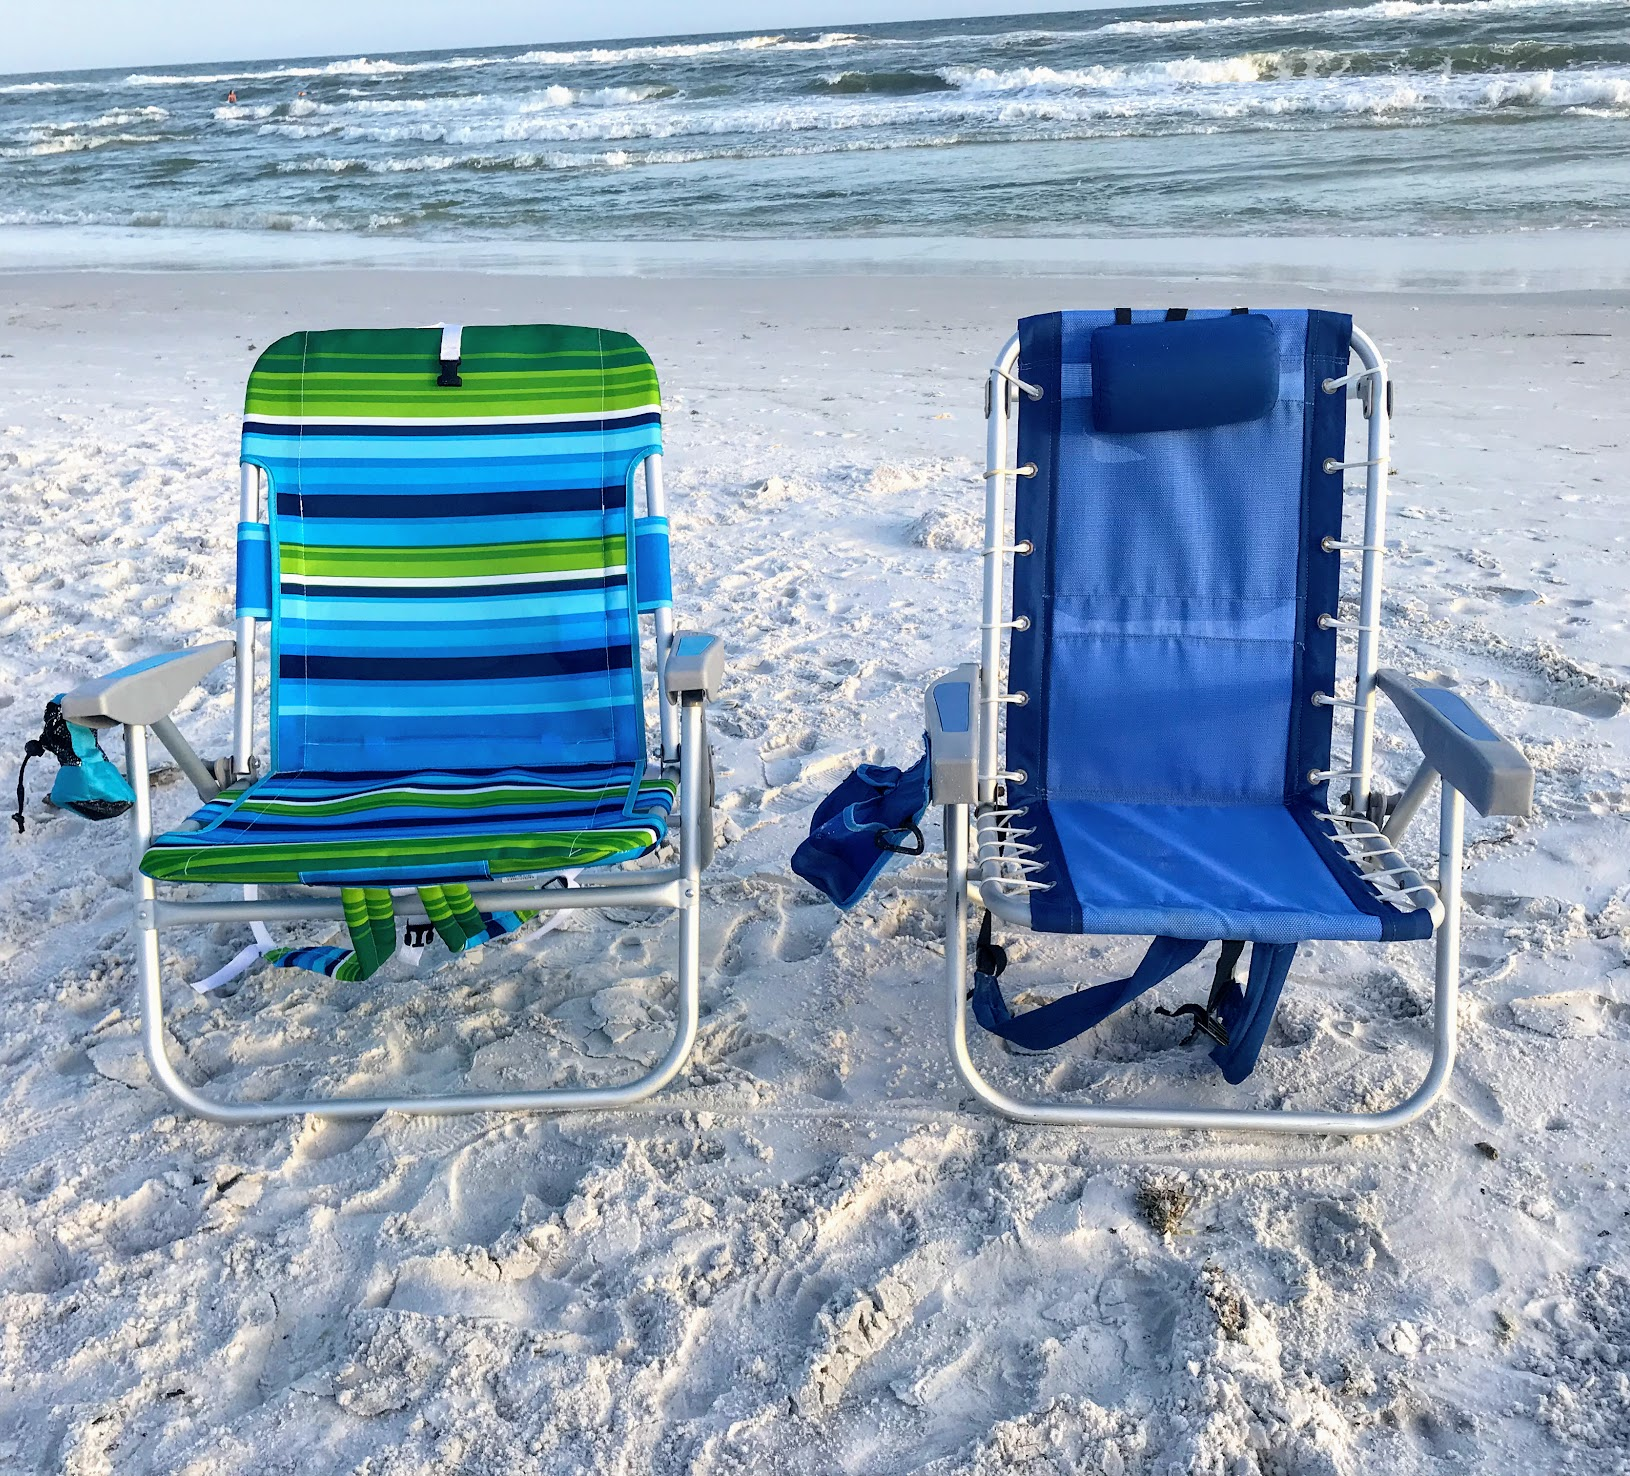 rio beach chair